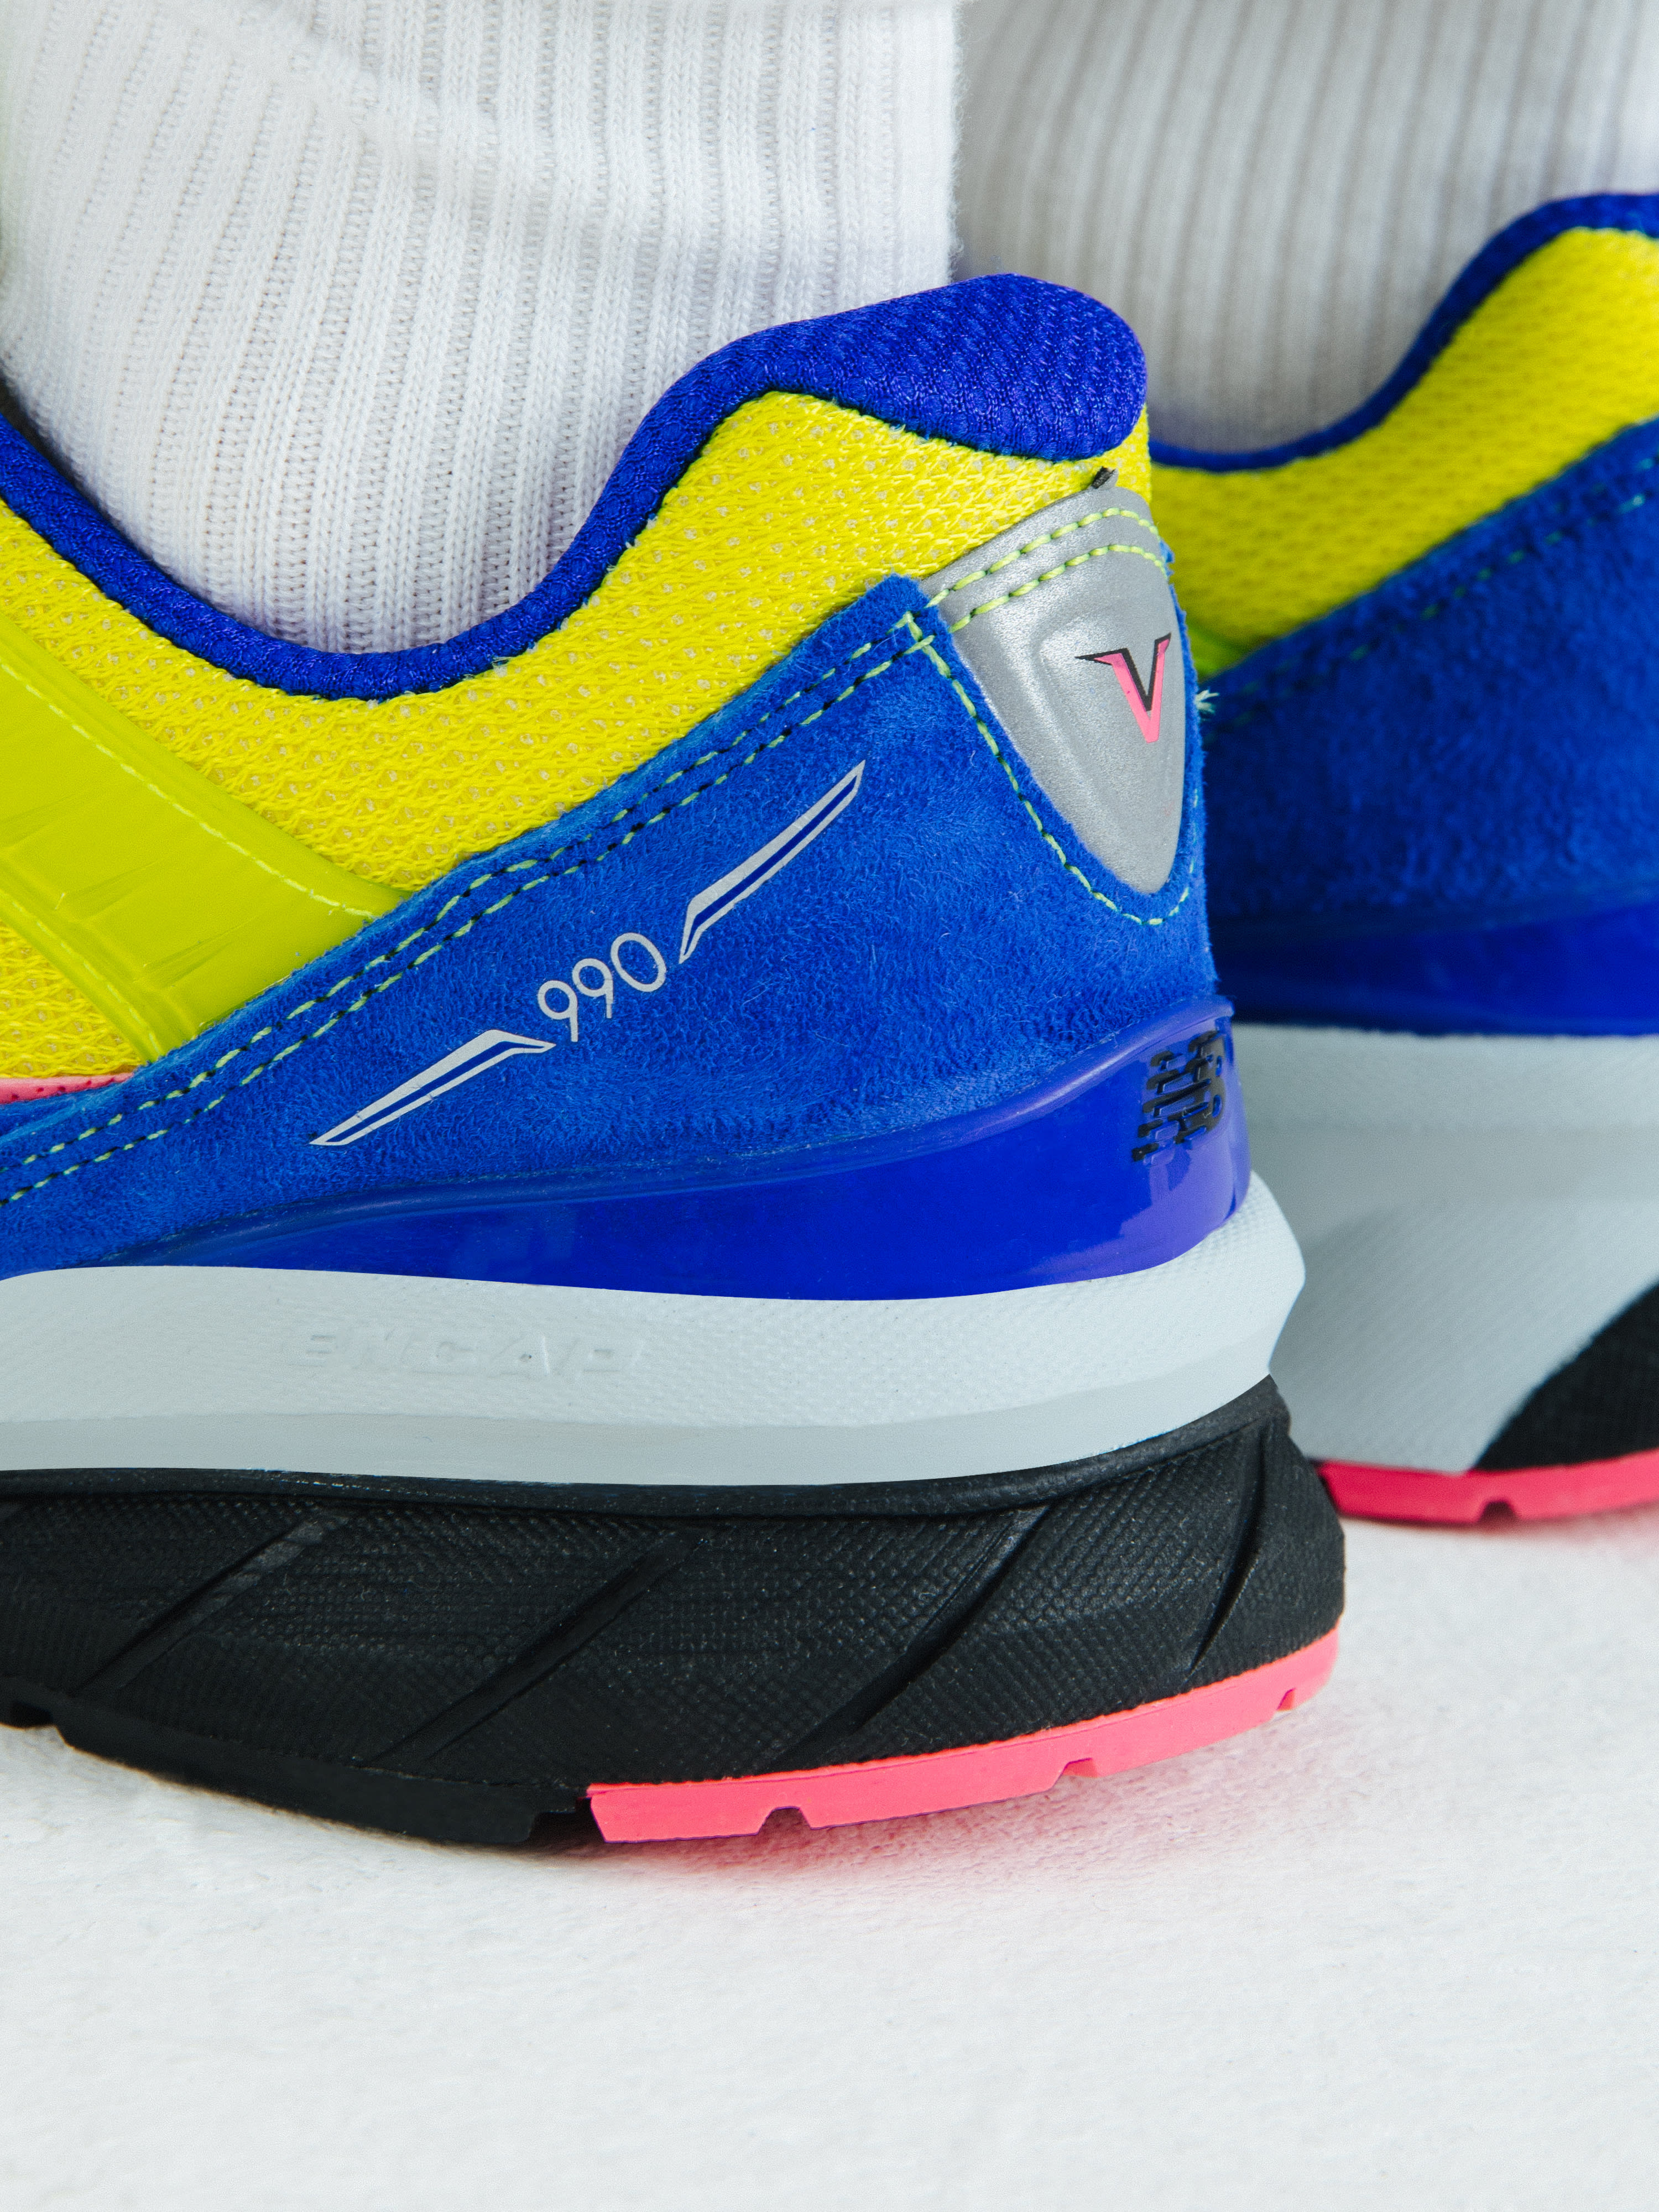 low priced 8ccab f11f4 Size? New Balance 990v5 Exclusive | Sole Collector